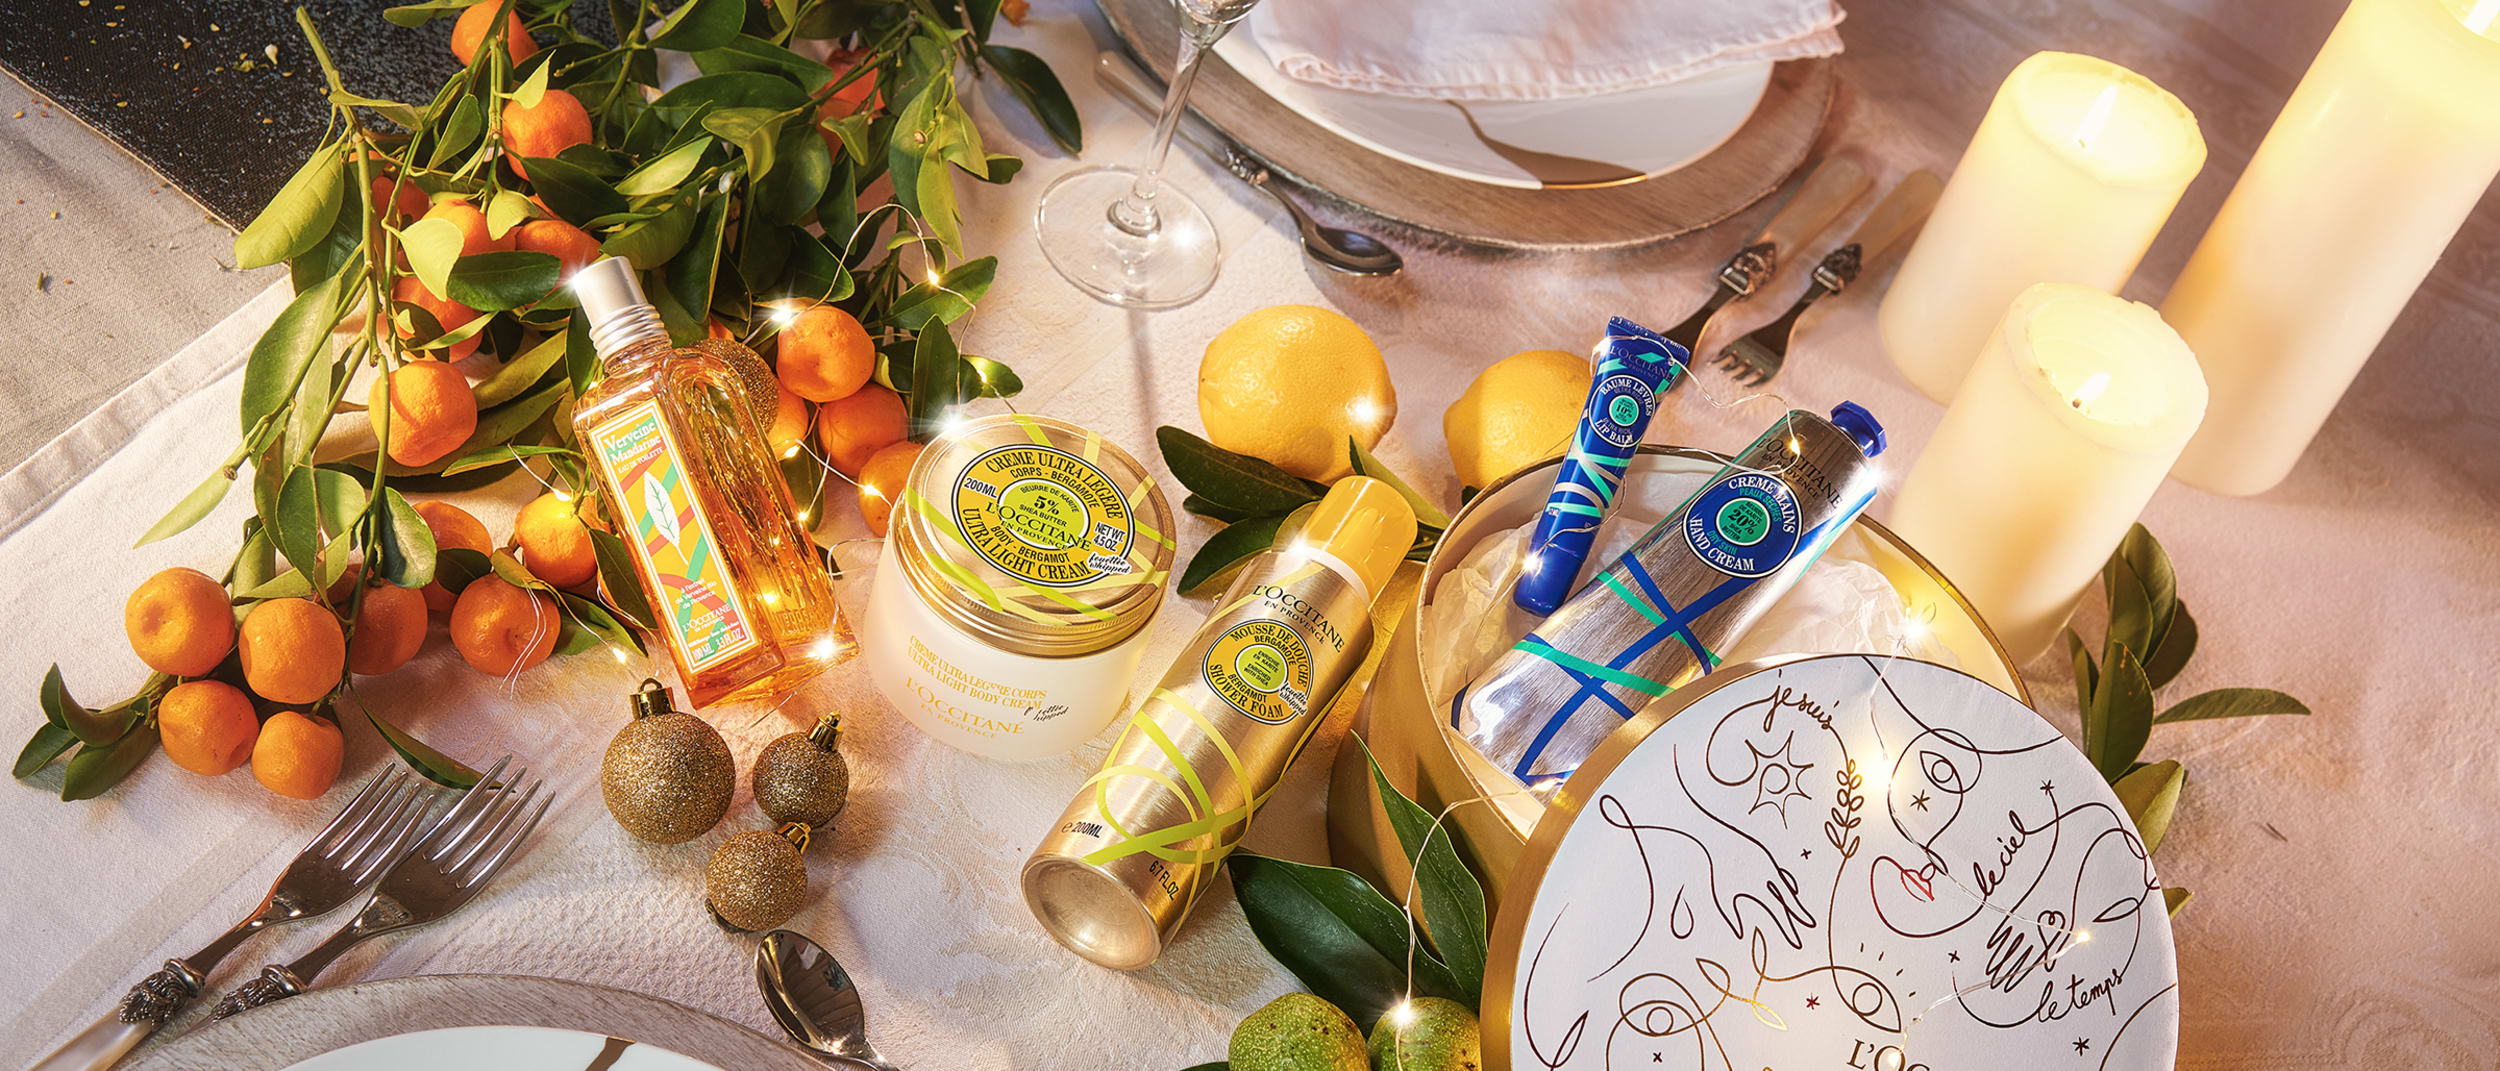 L'OCCITANE Christmas Limited Editions